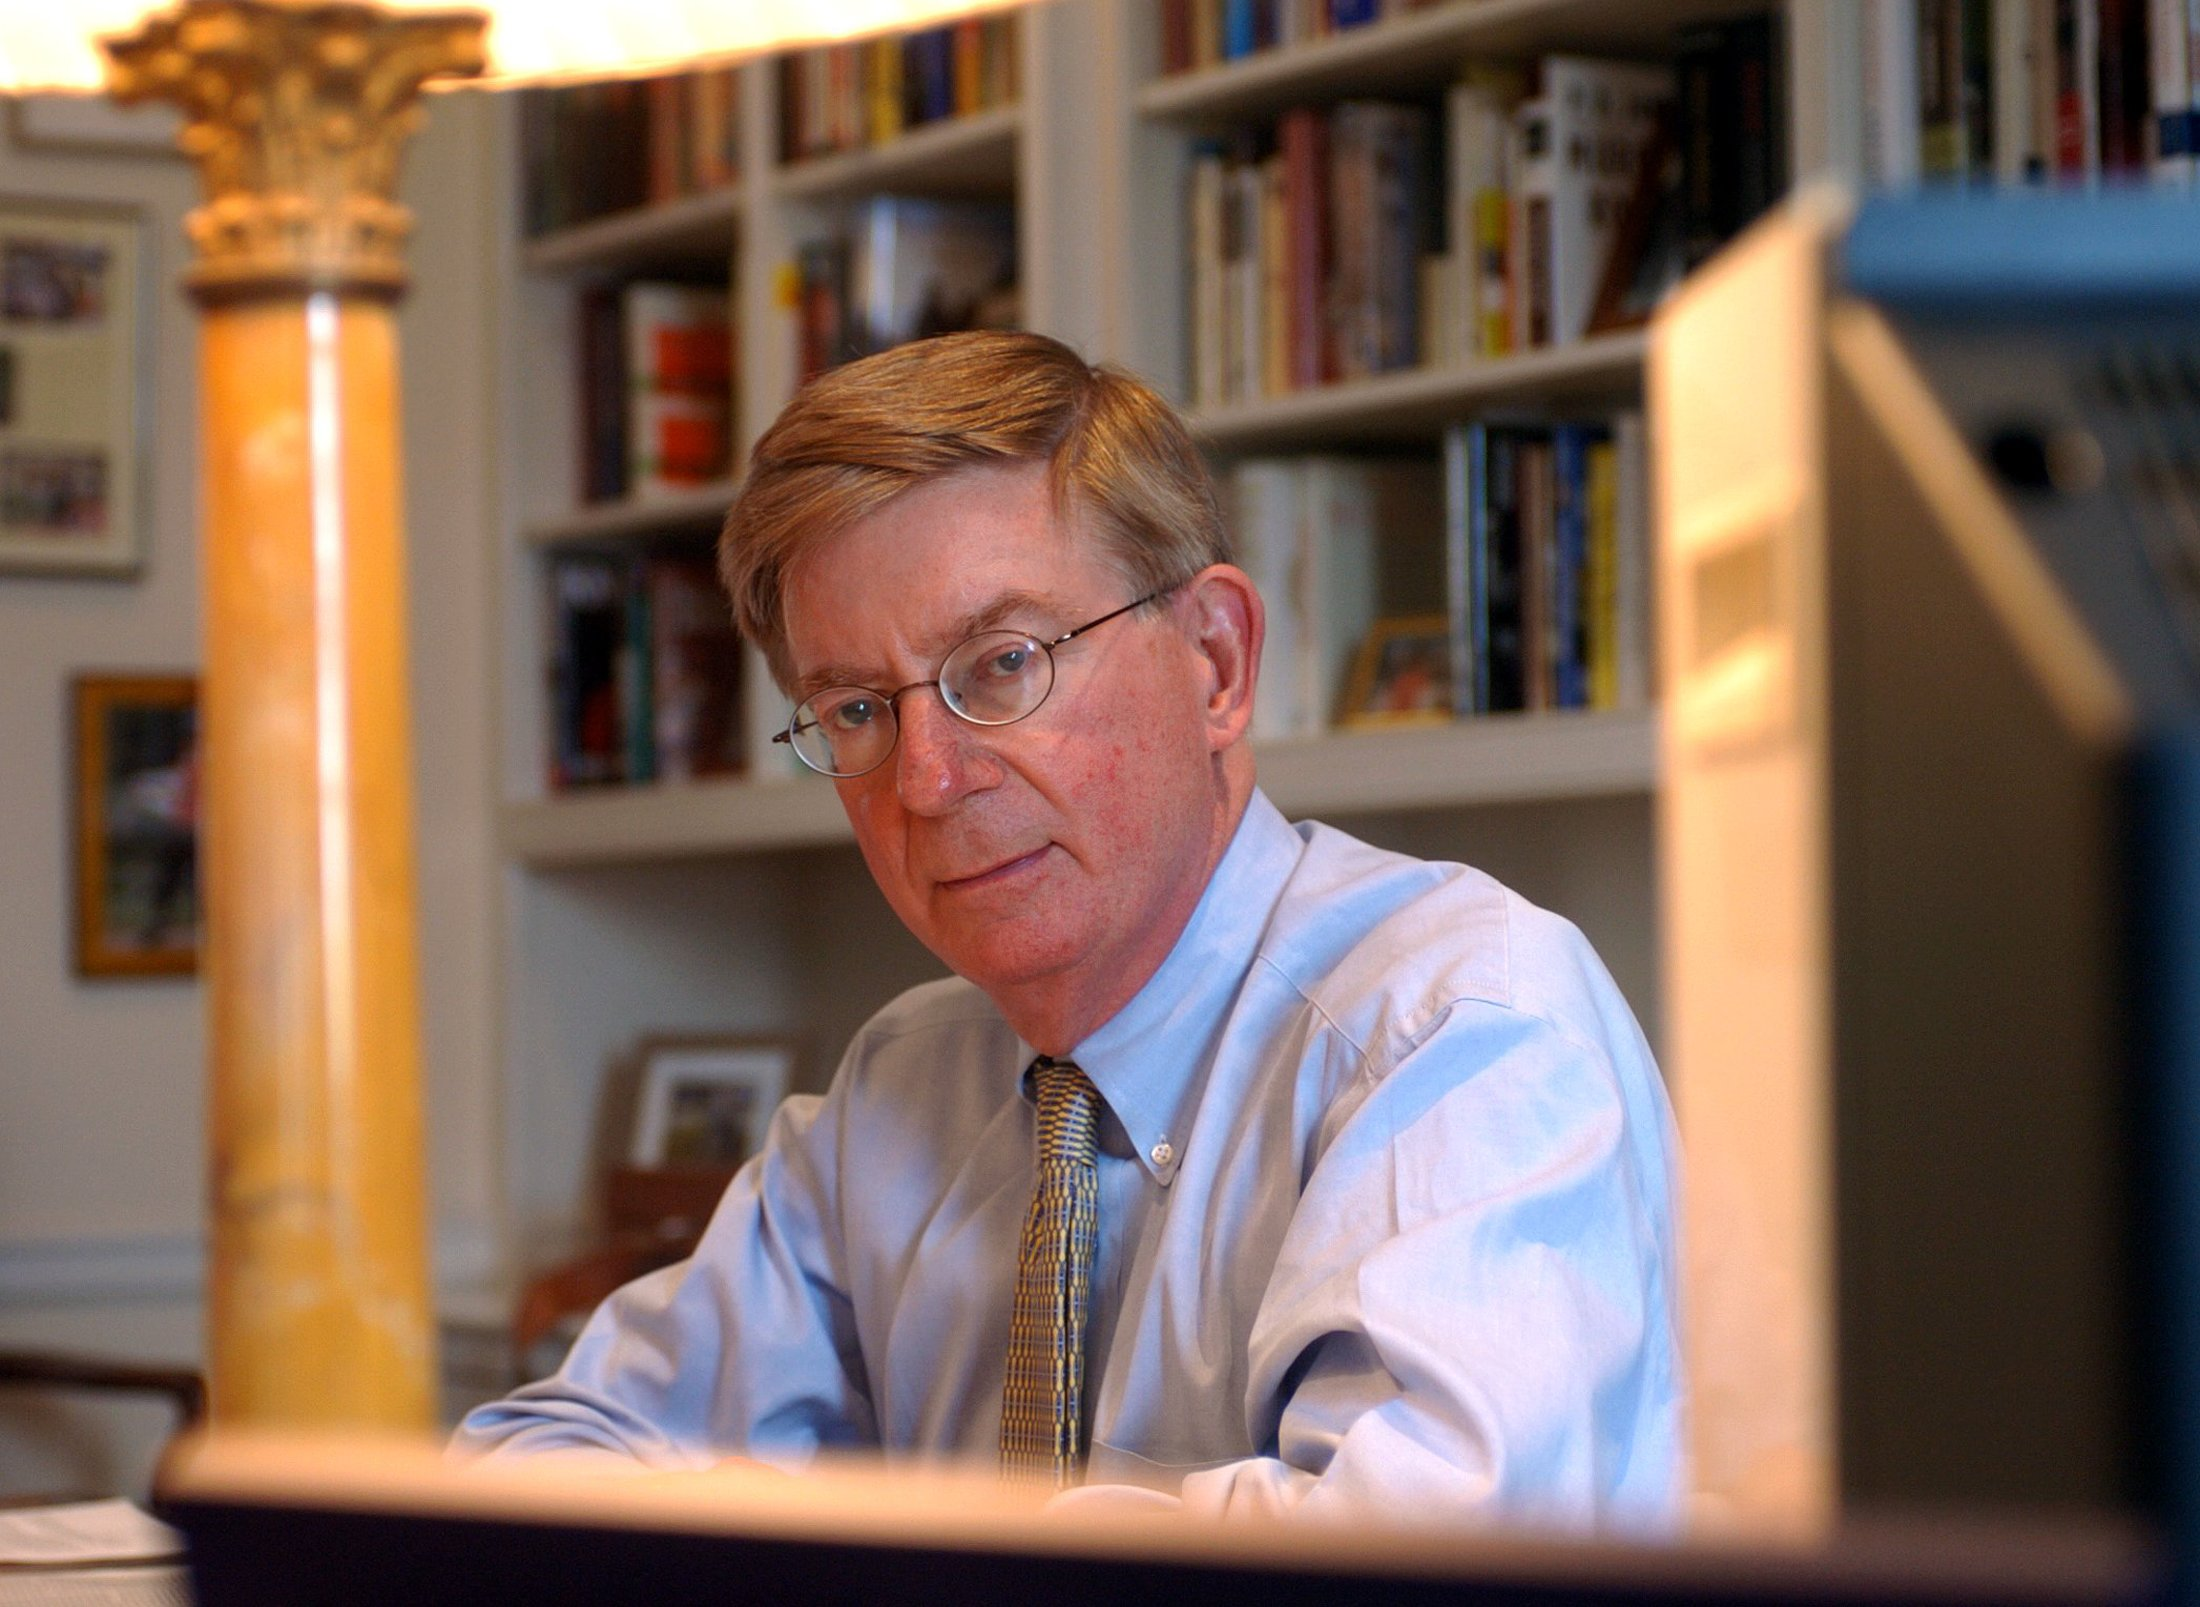 George Will makes the conservative case against democracy